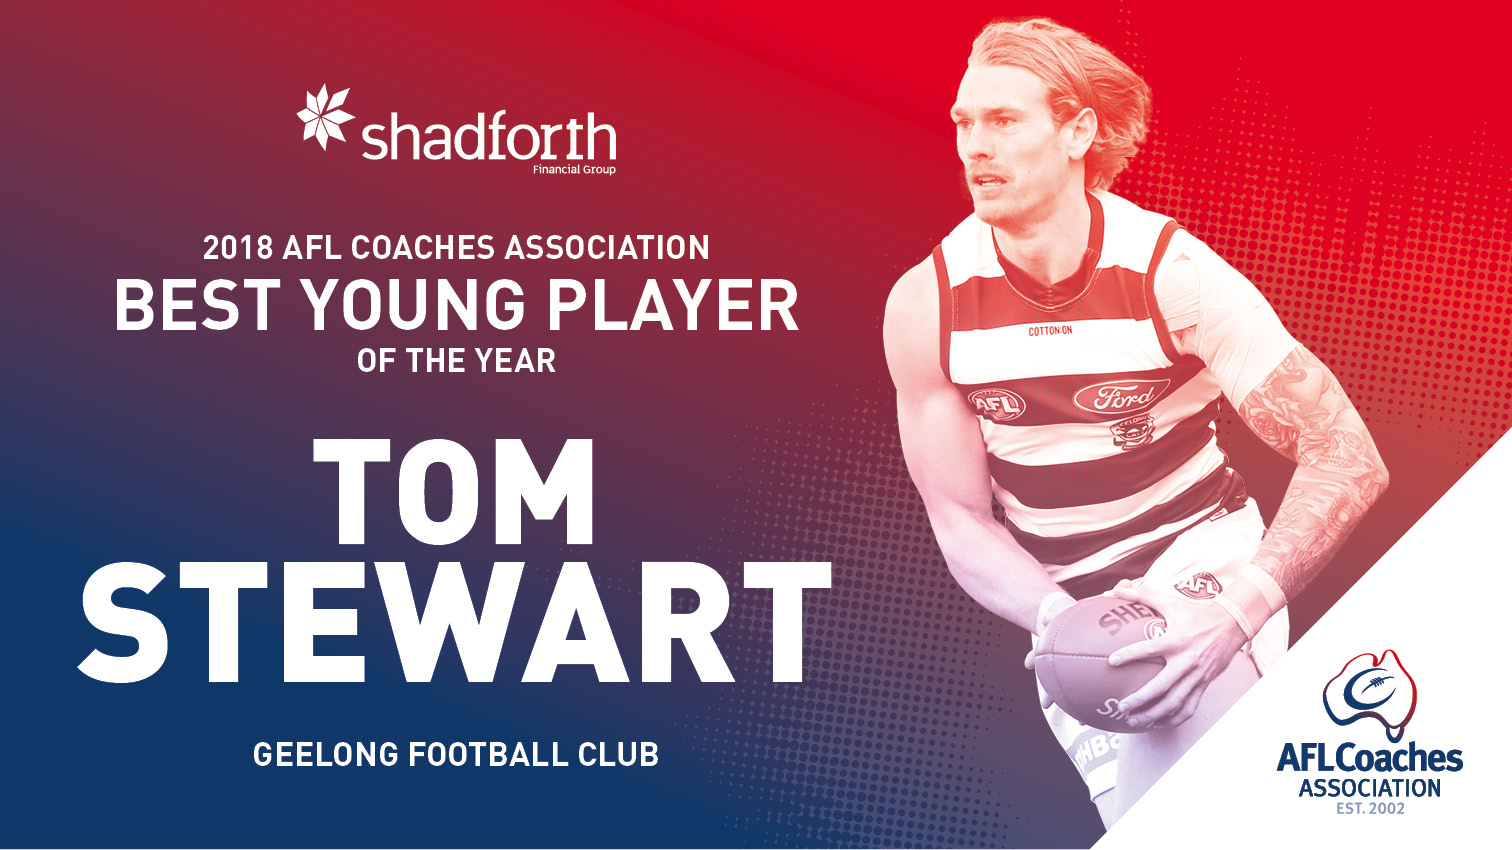 Shadforth Financial Group Best Young Player